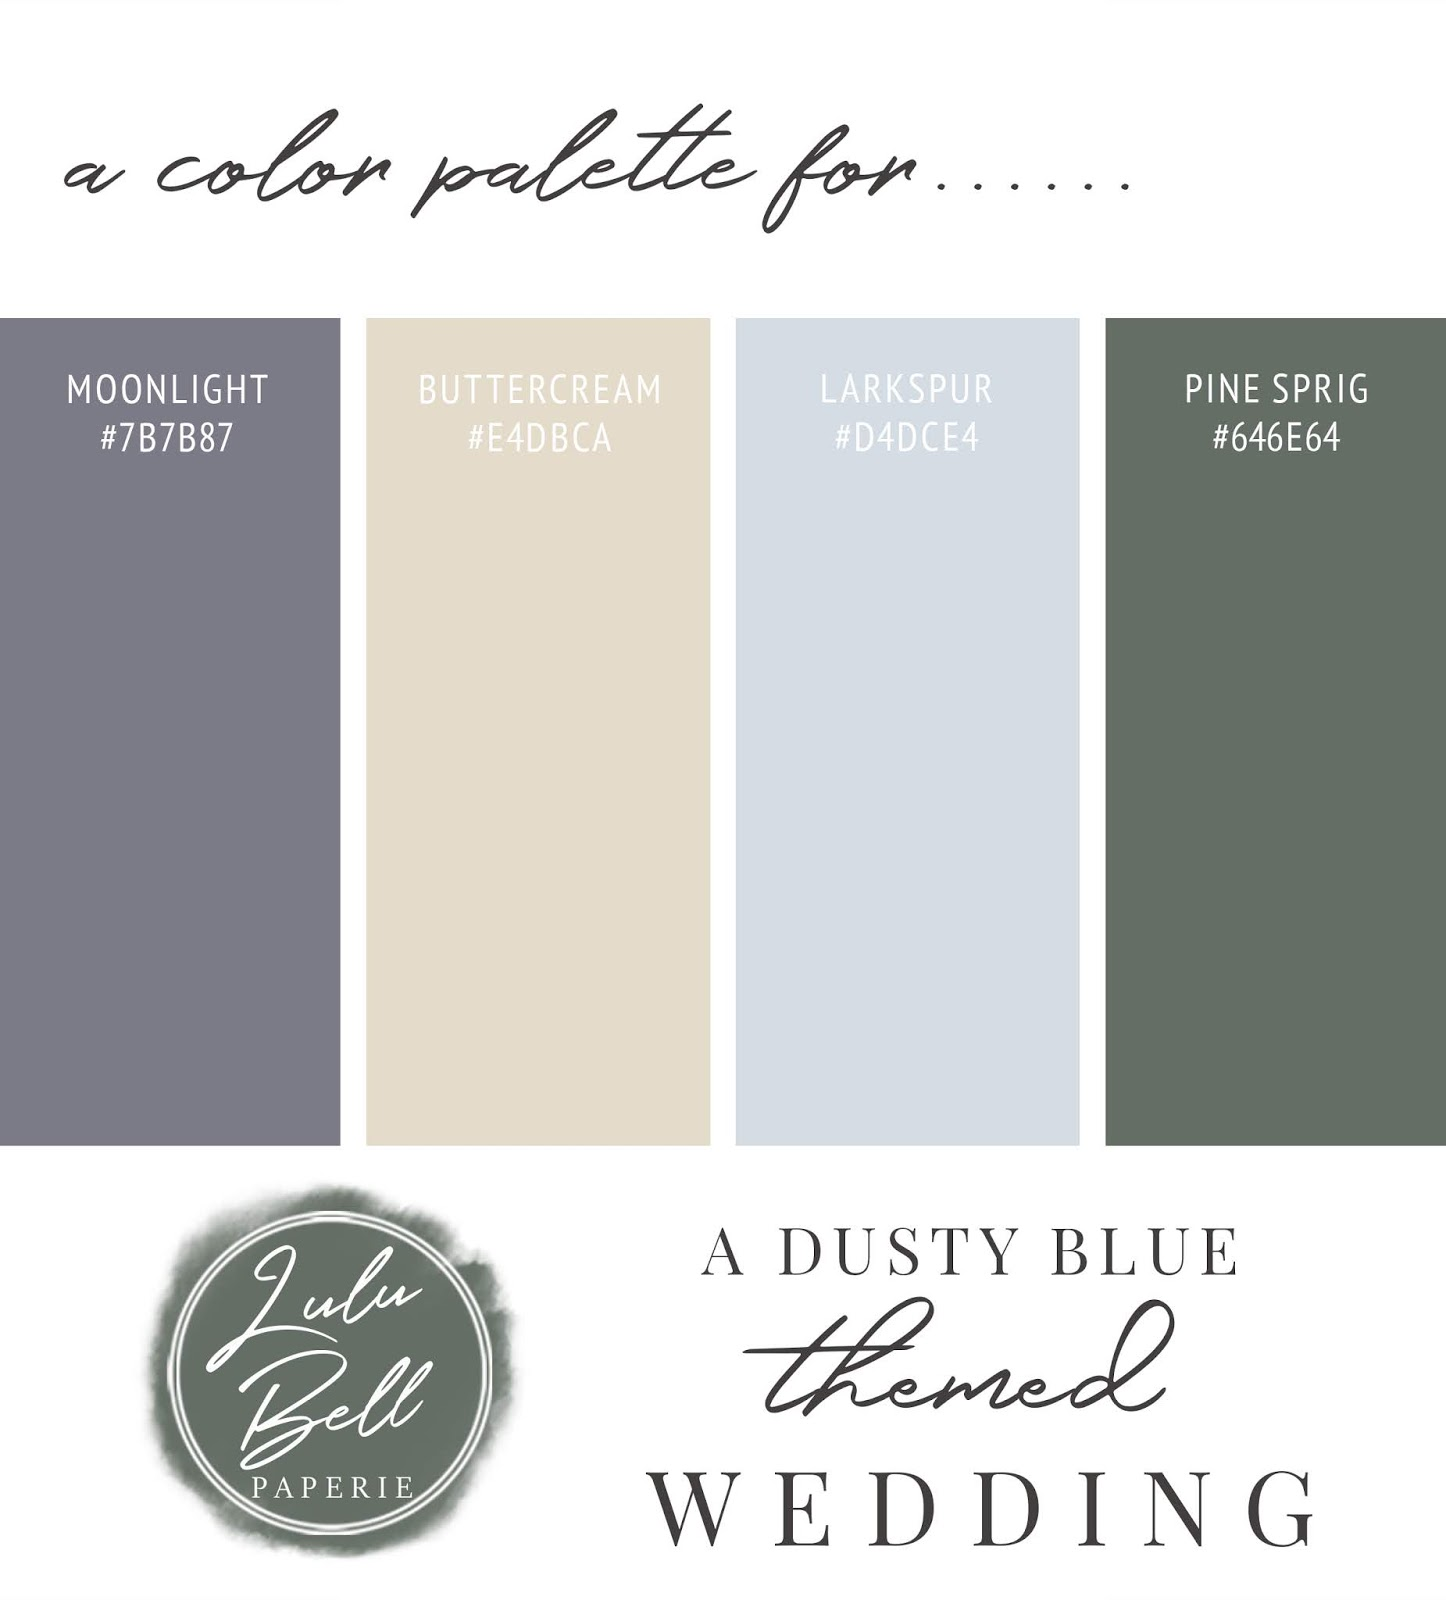 Dusty Blue, Yellow, Navy, and Green Wedding Color Palette Swatch Card : Moonlight, Buttercream, Larkspur, and Pine Sprig